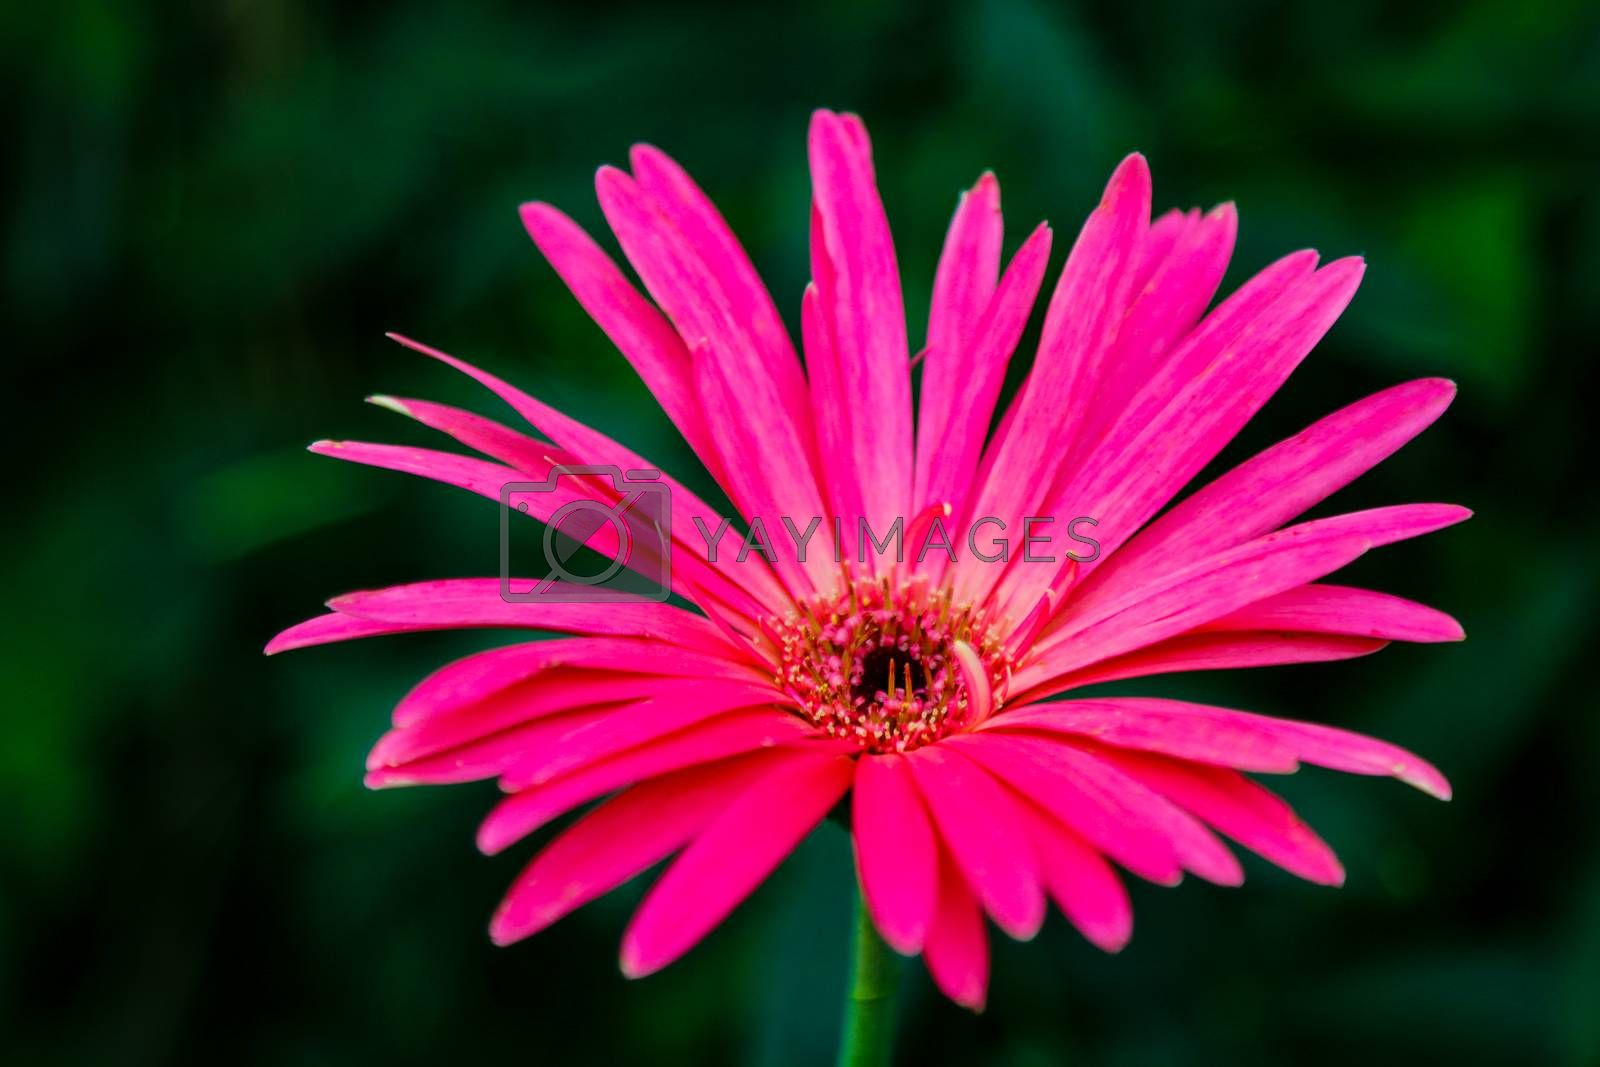 Beautiful pink hybrid Gerbera or Barberton daisy flowers. by kip02kas